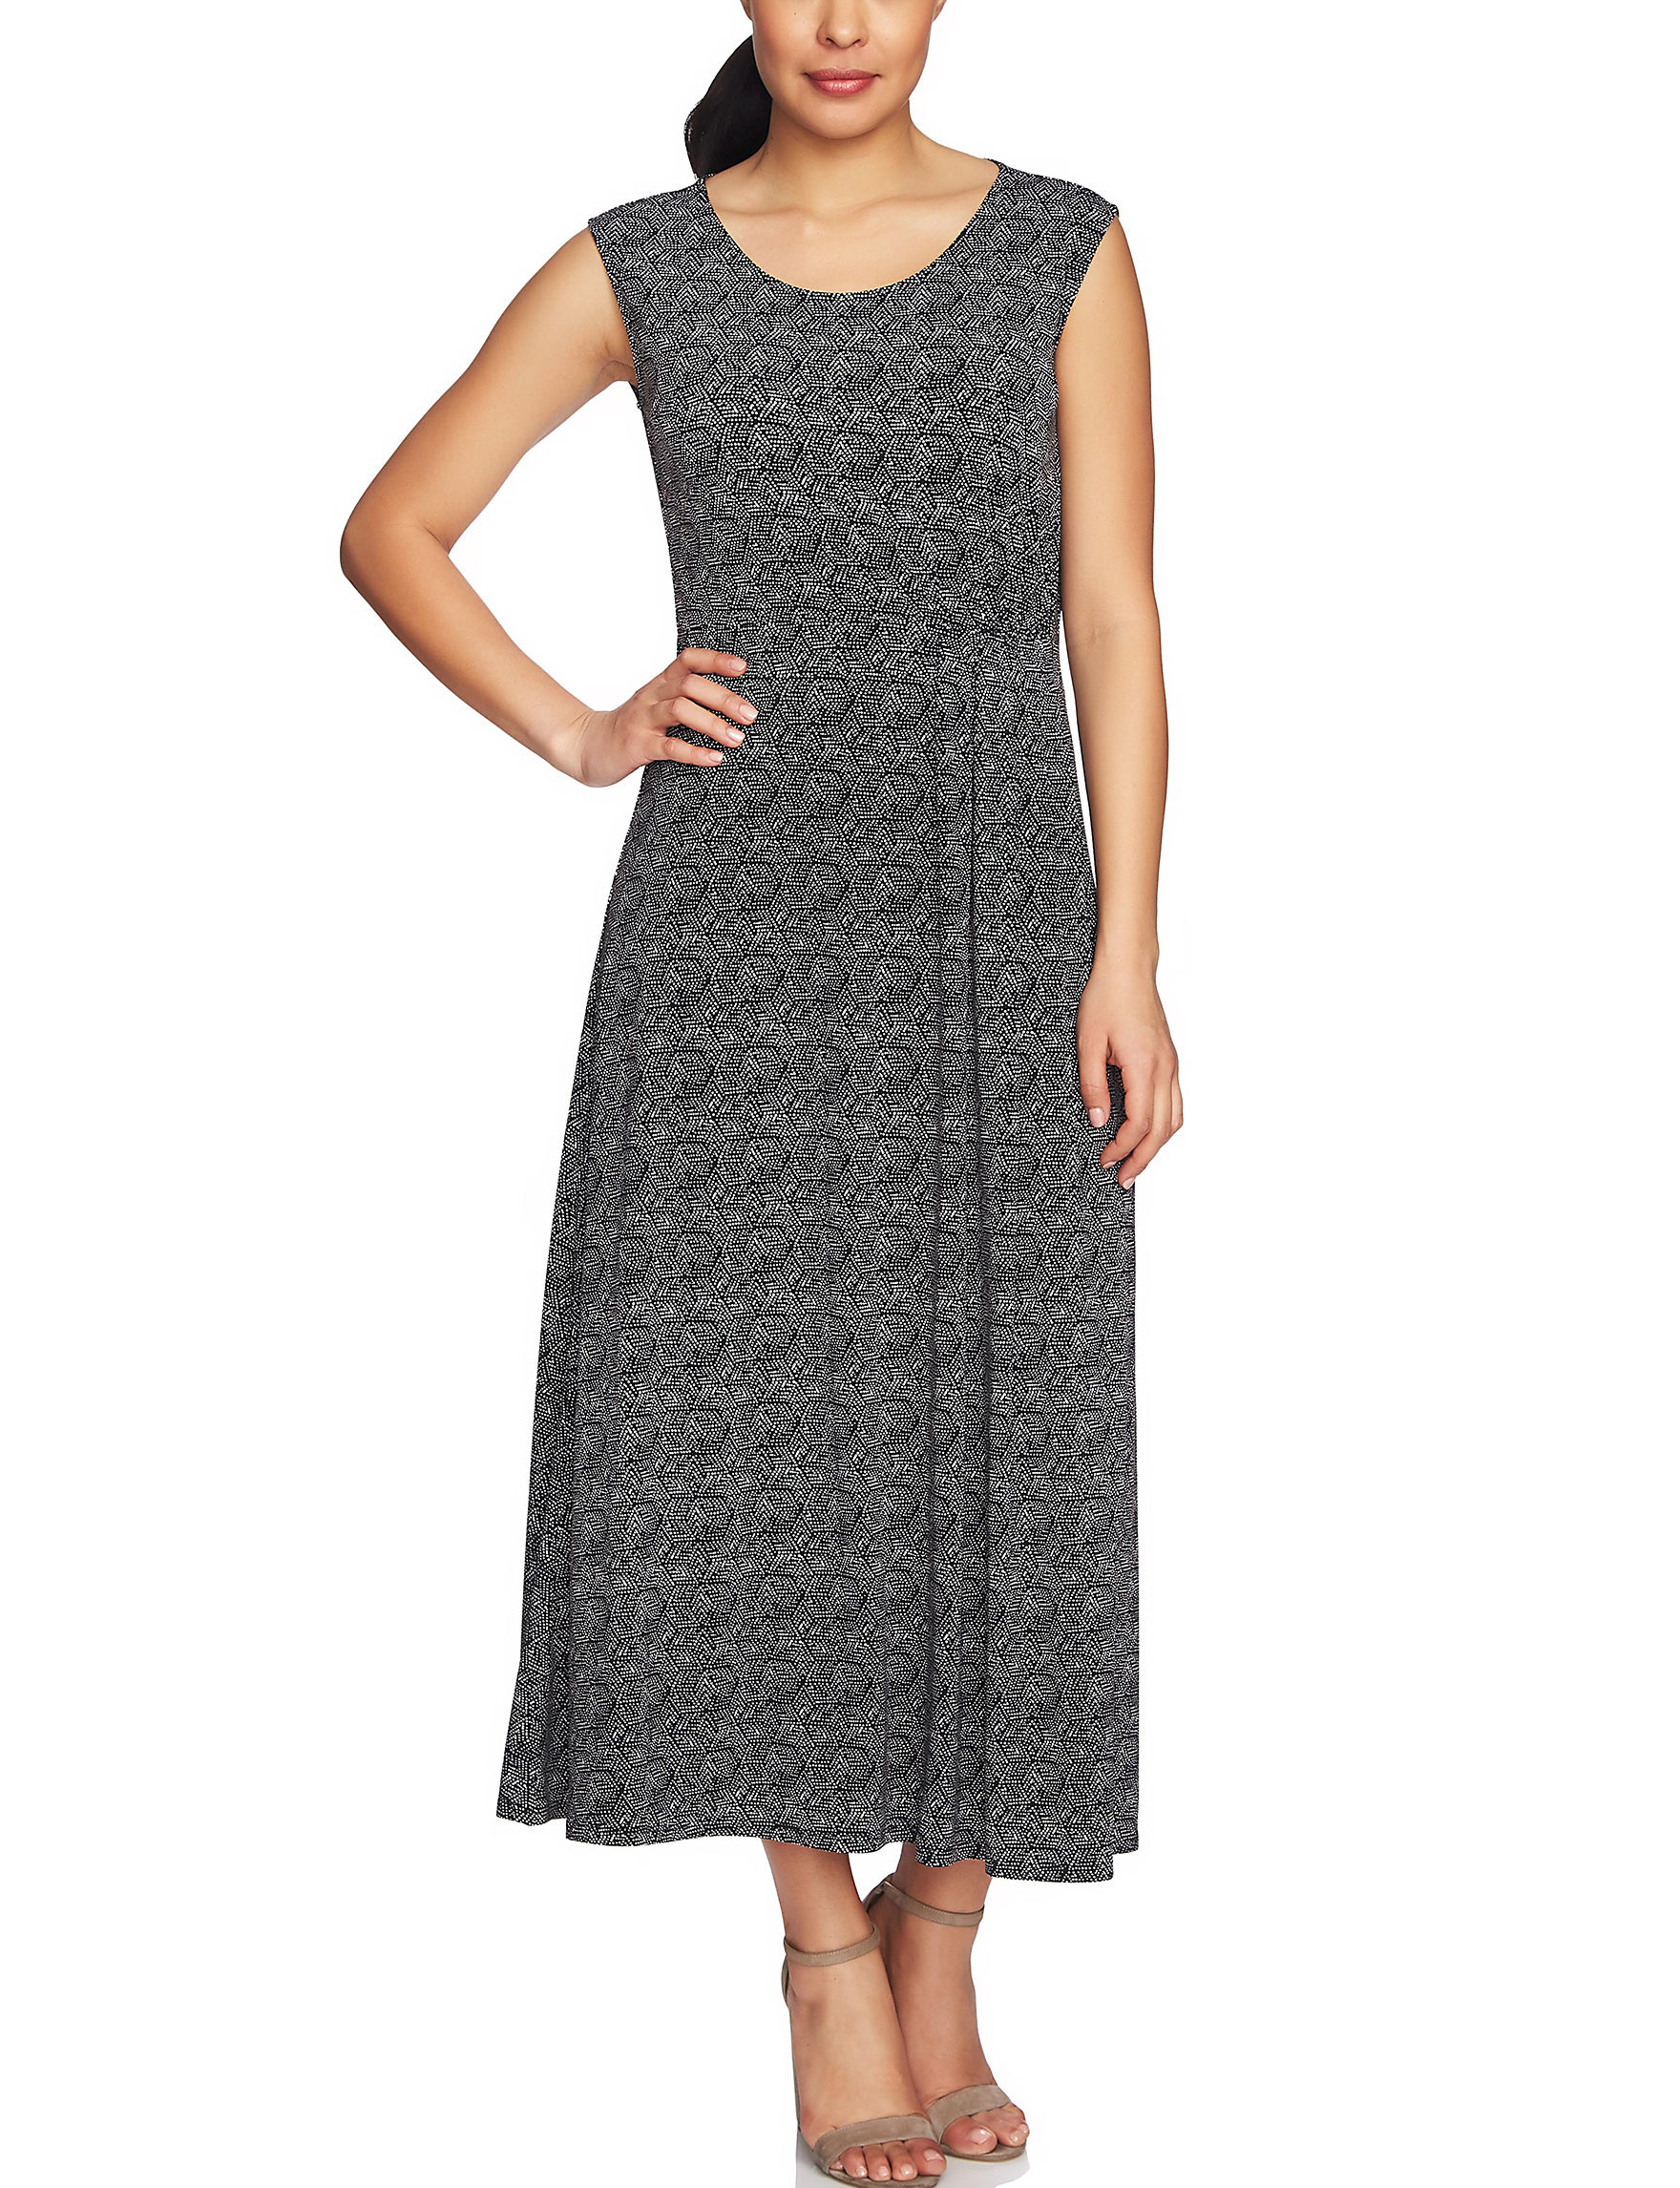 Chaus Black Everyday & Casual Fit & Flare Dresses Sundresses